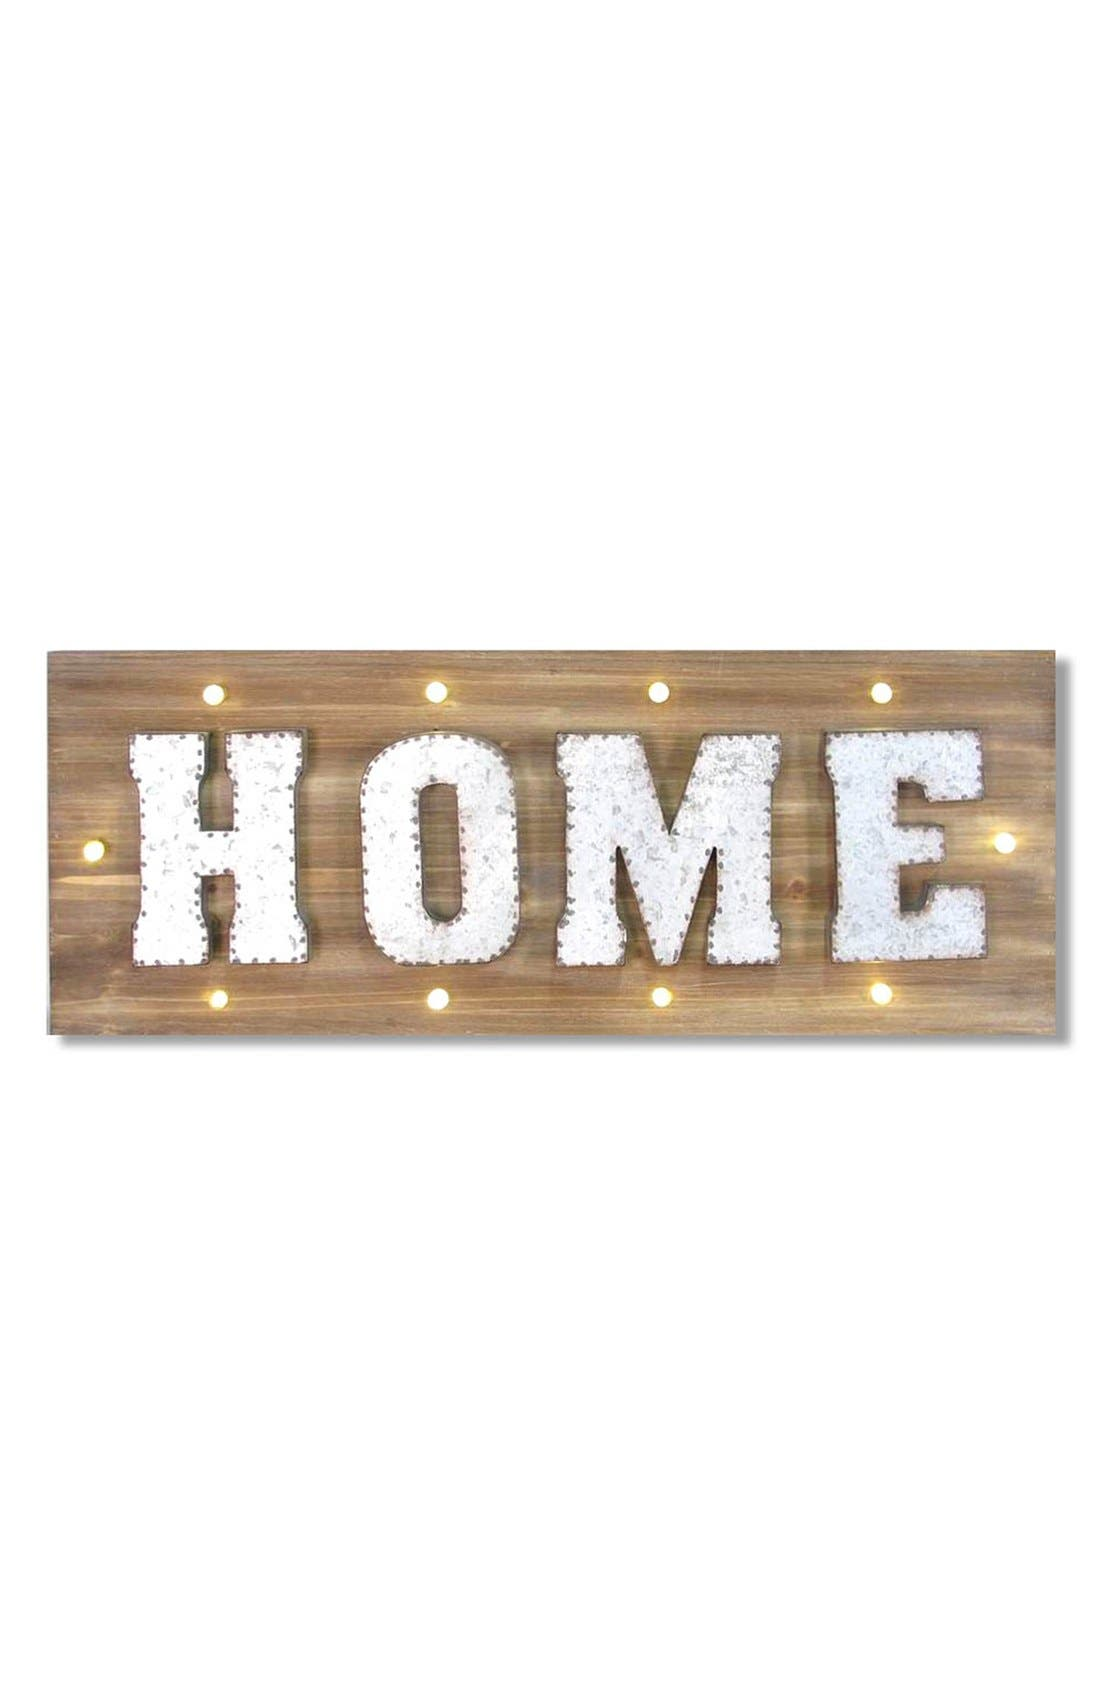 Main Image - Crystal Art Gallery 'Home' Marquee Light Wooden Sign